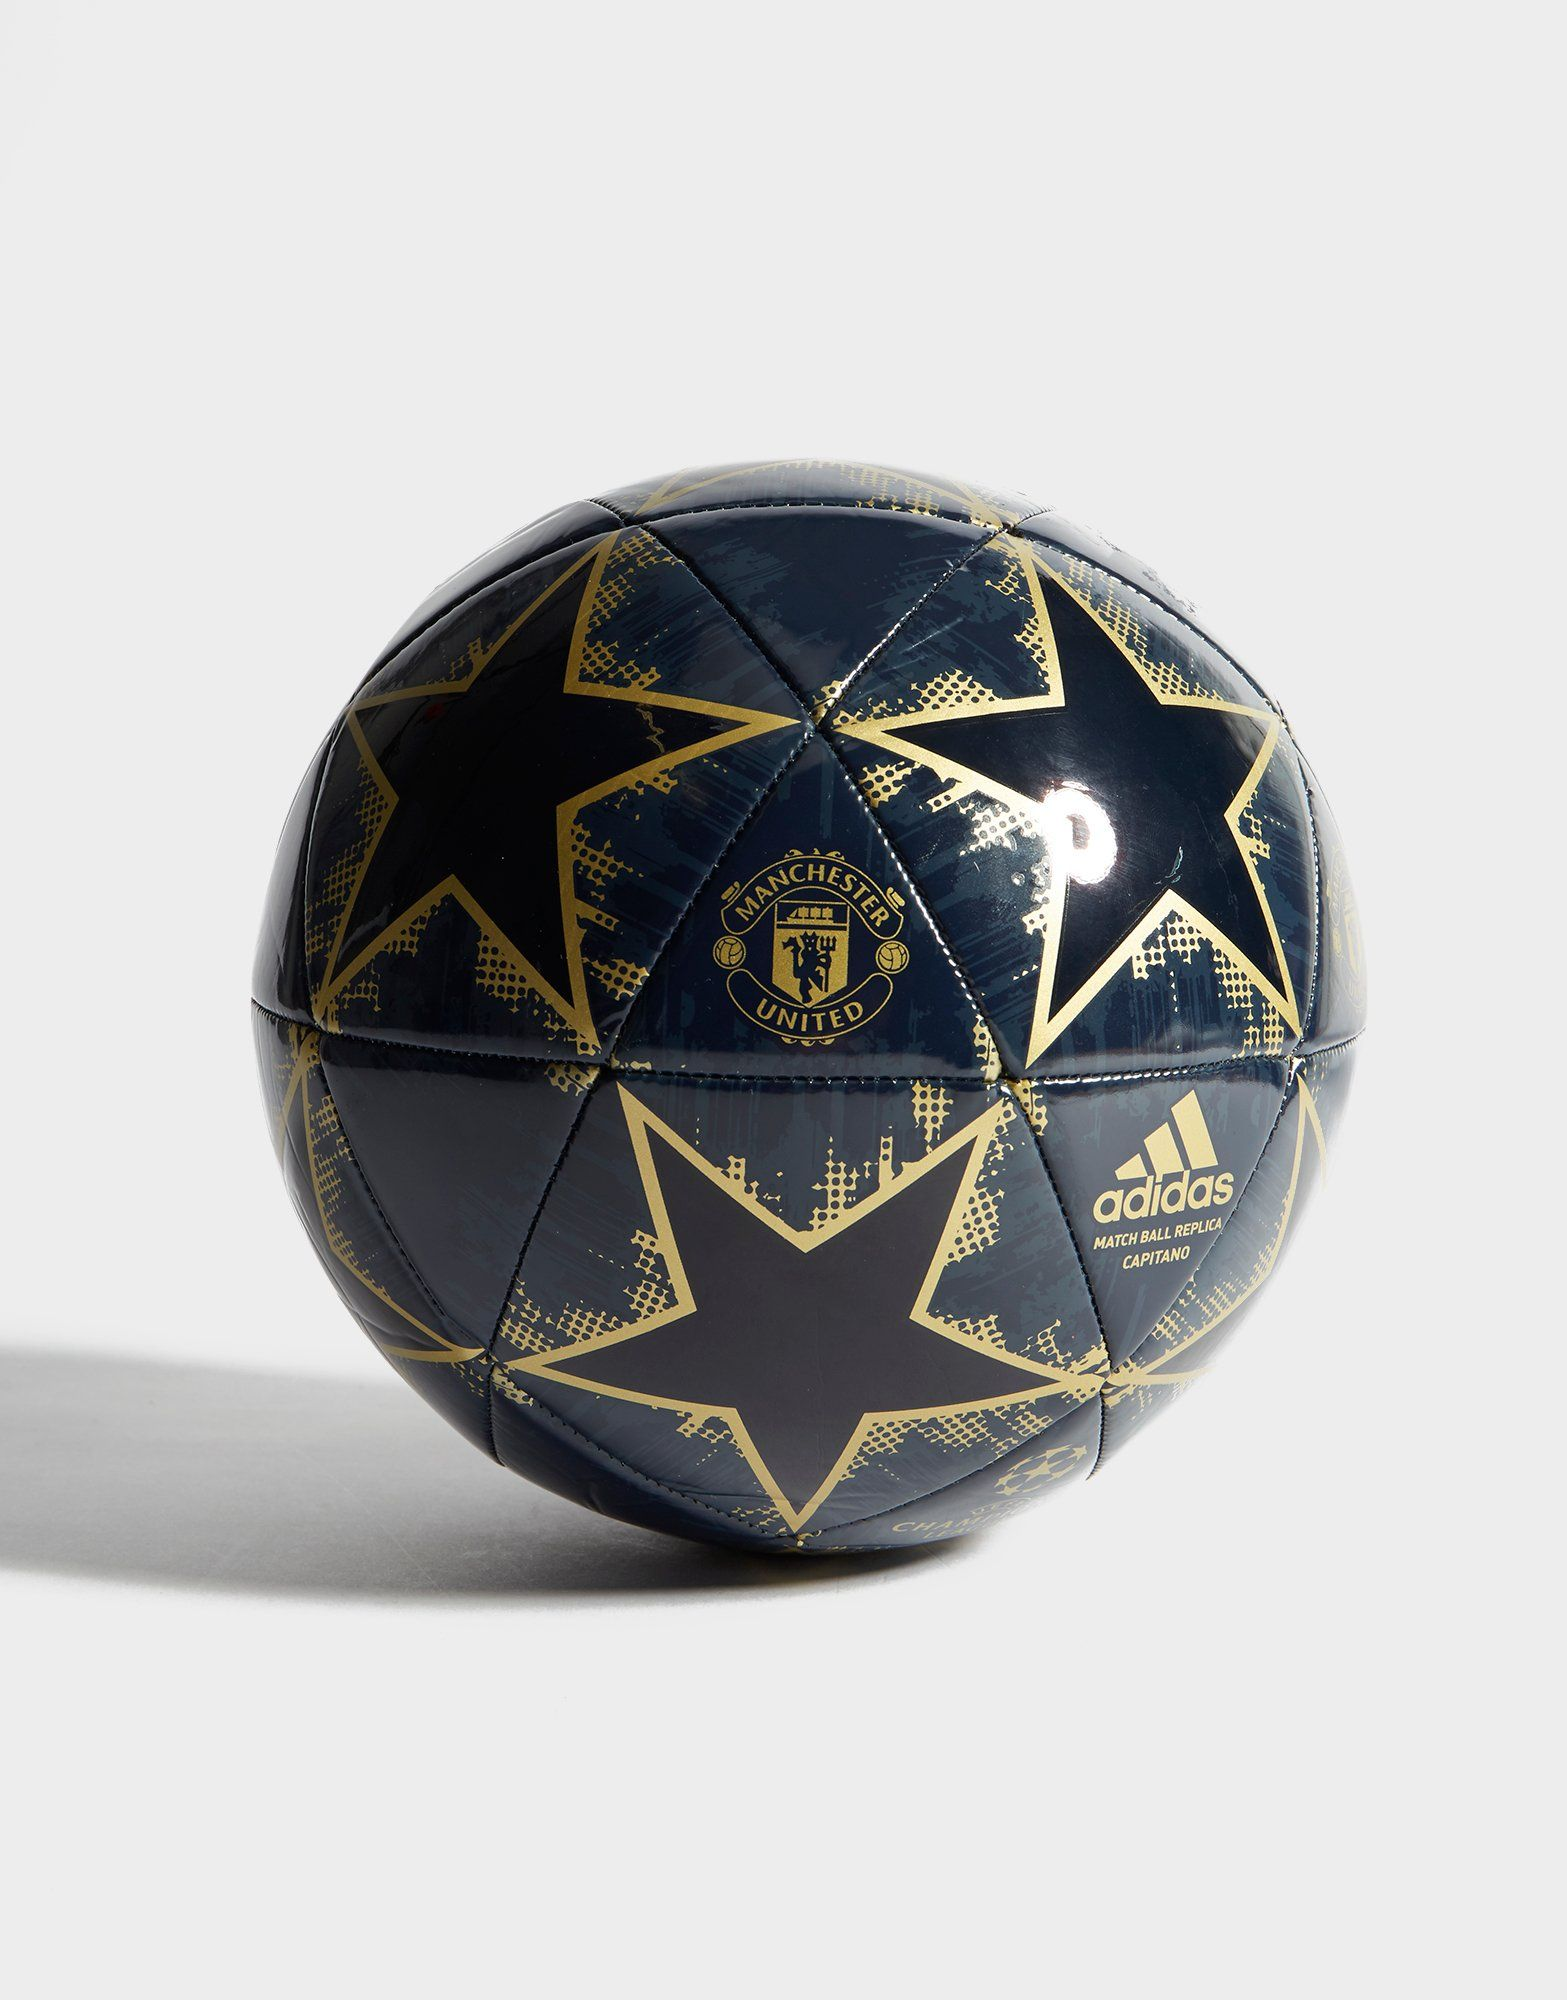 adidas Manchester United FC Finale 2018 Football